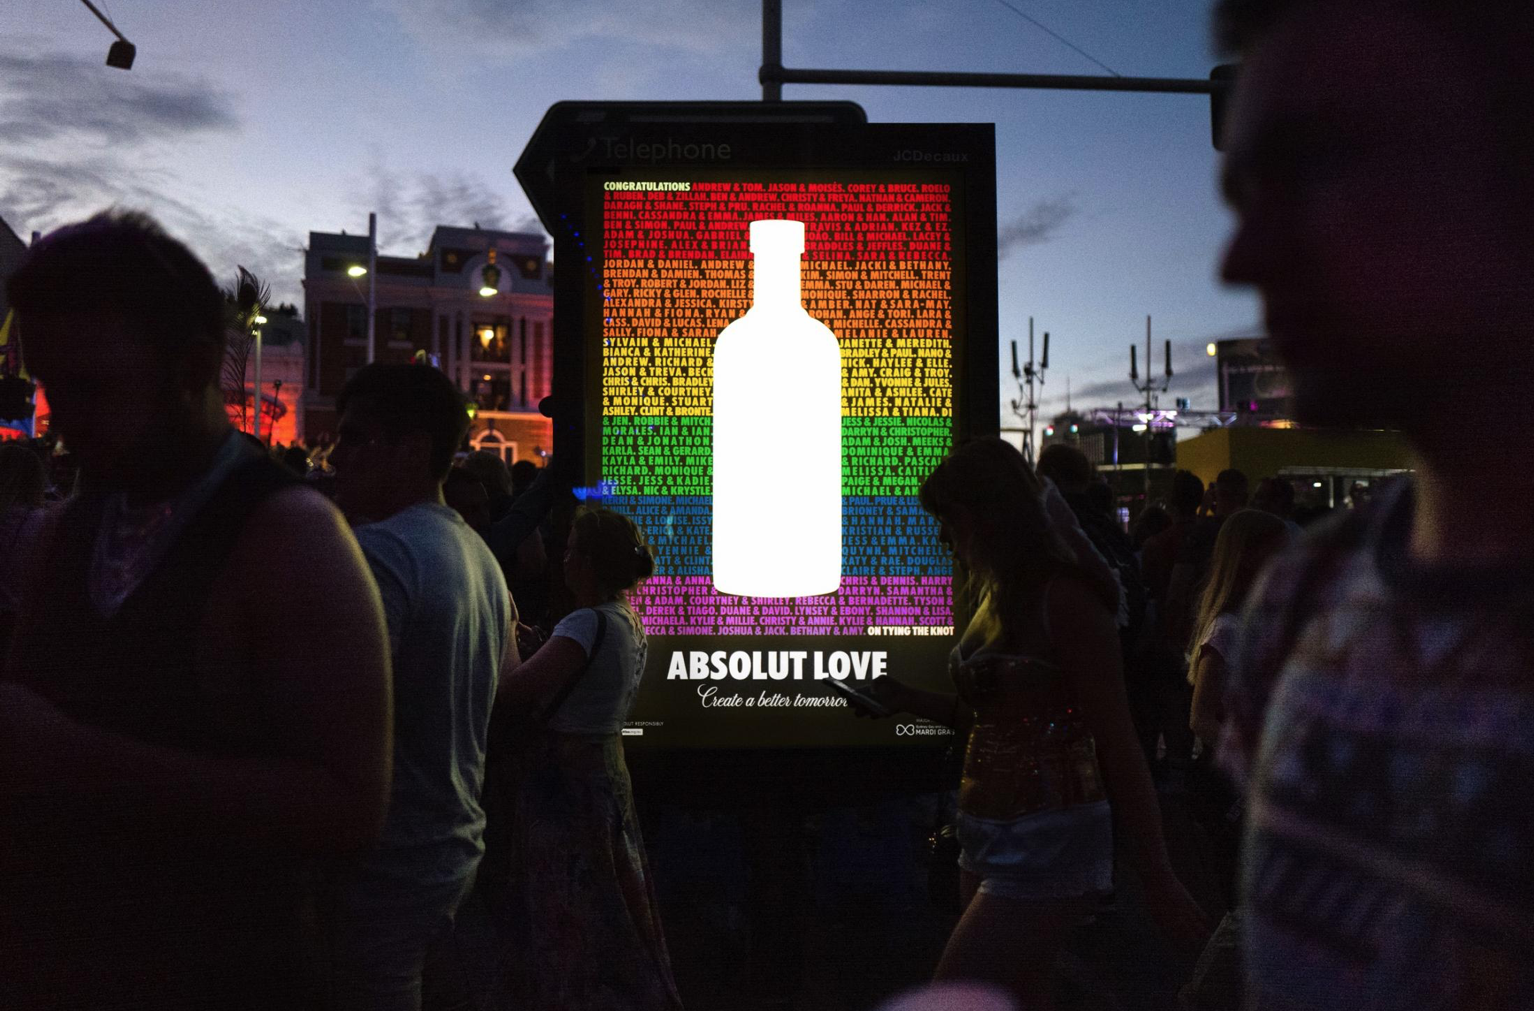 The names of participating couples were featured in billboards throughout the city.